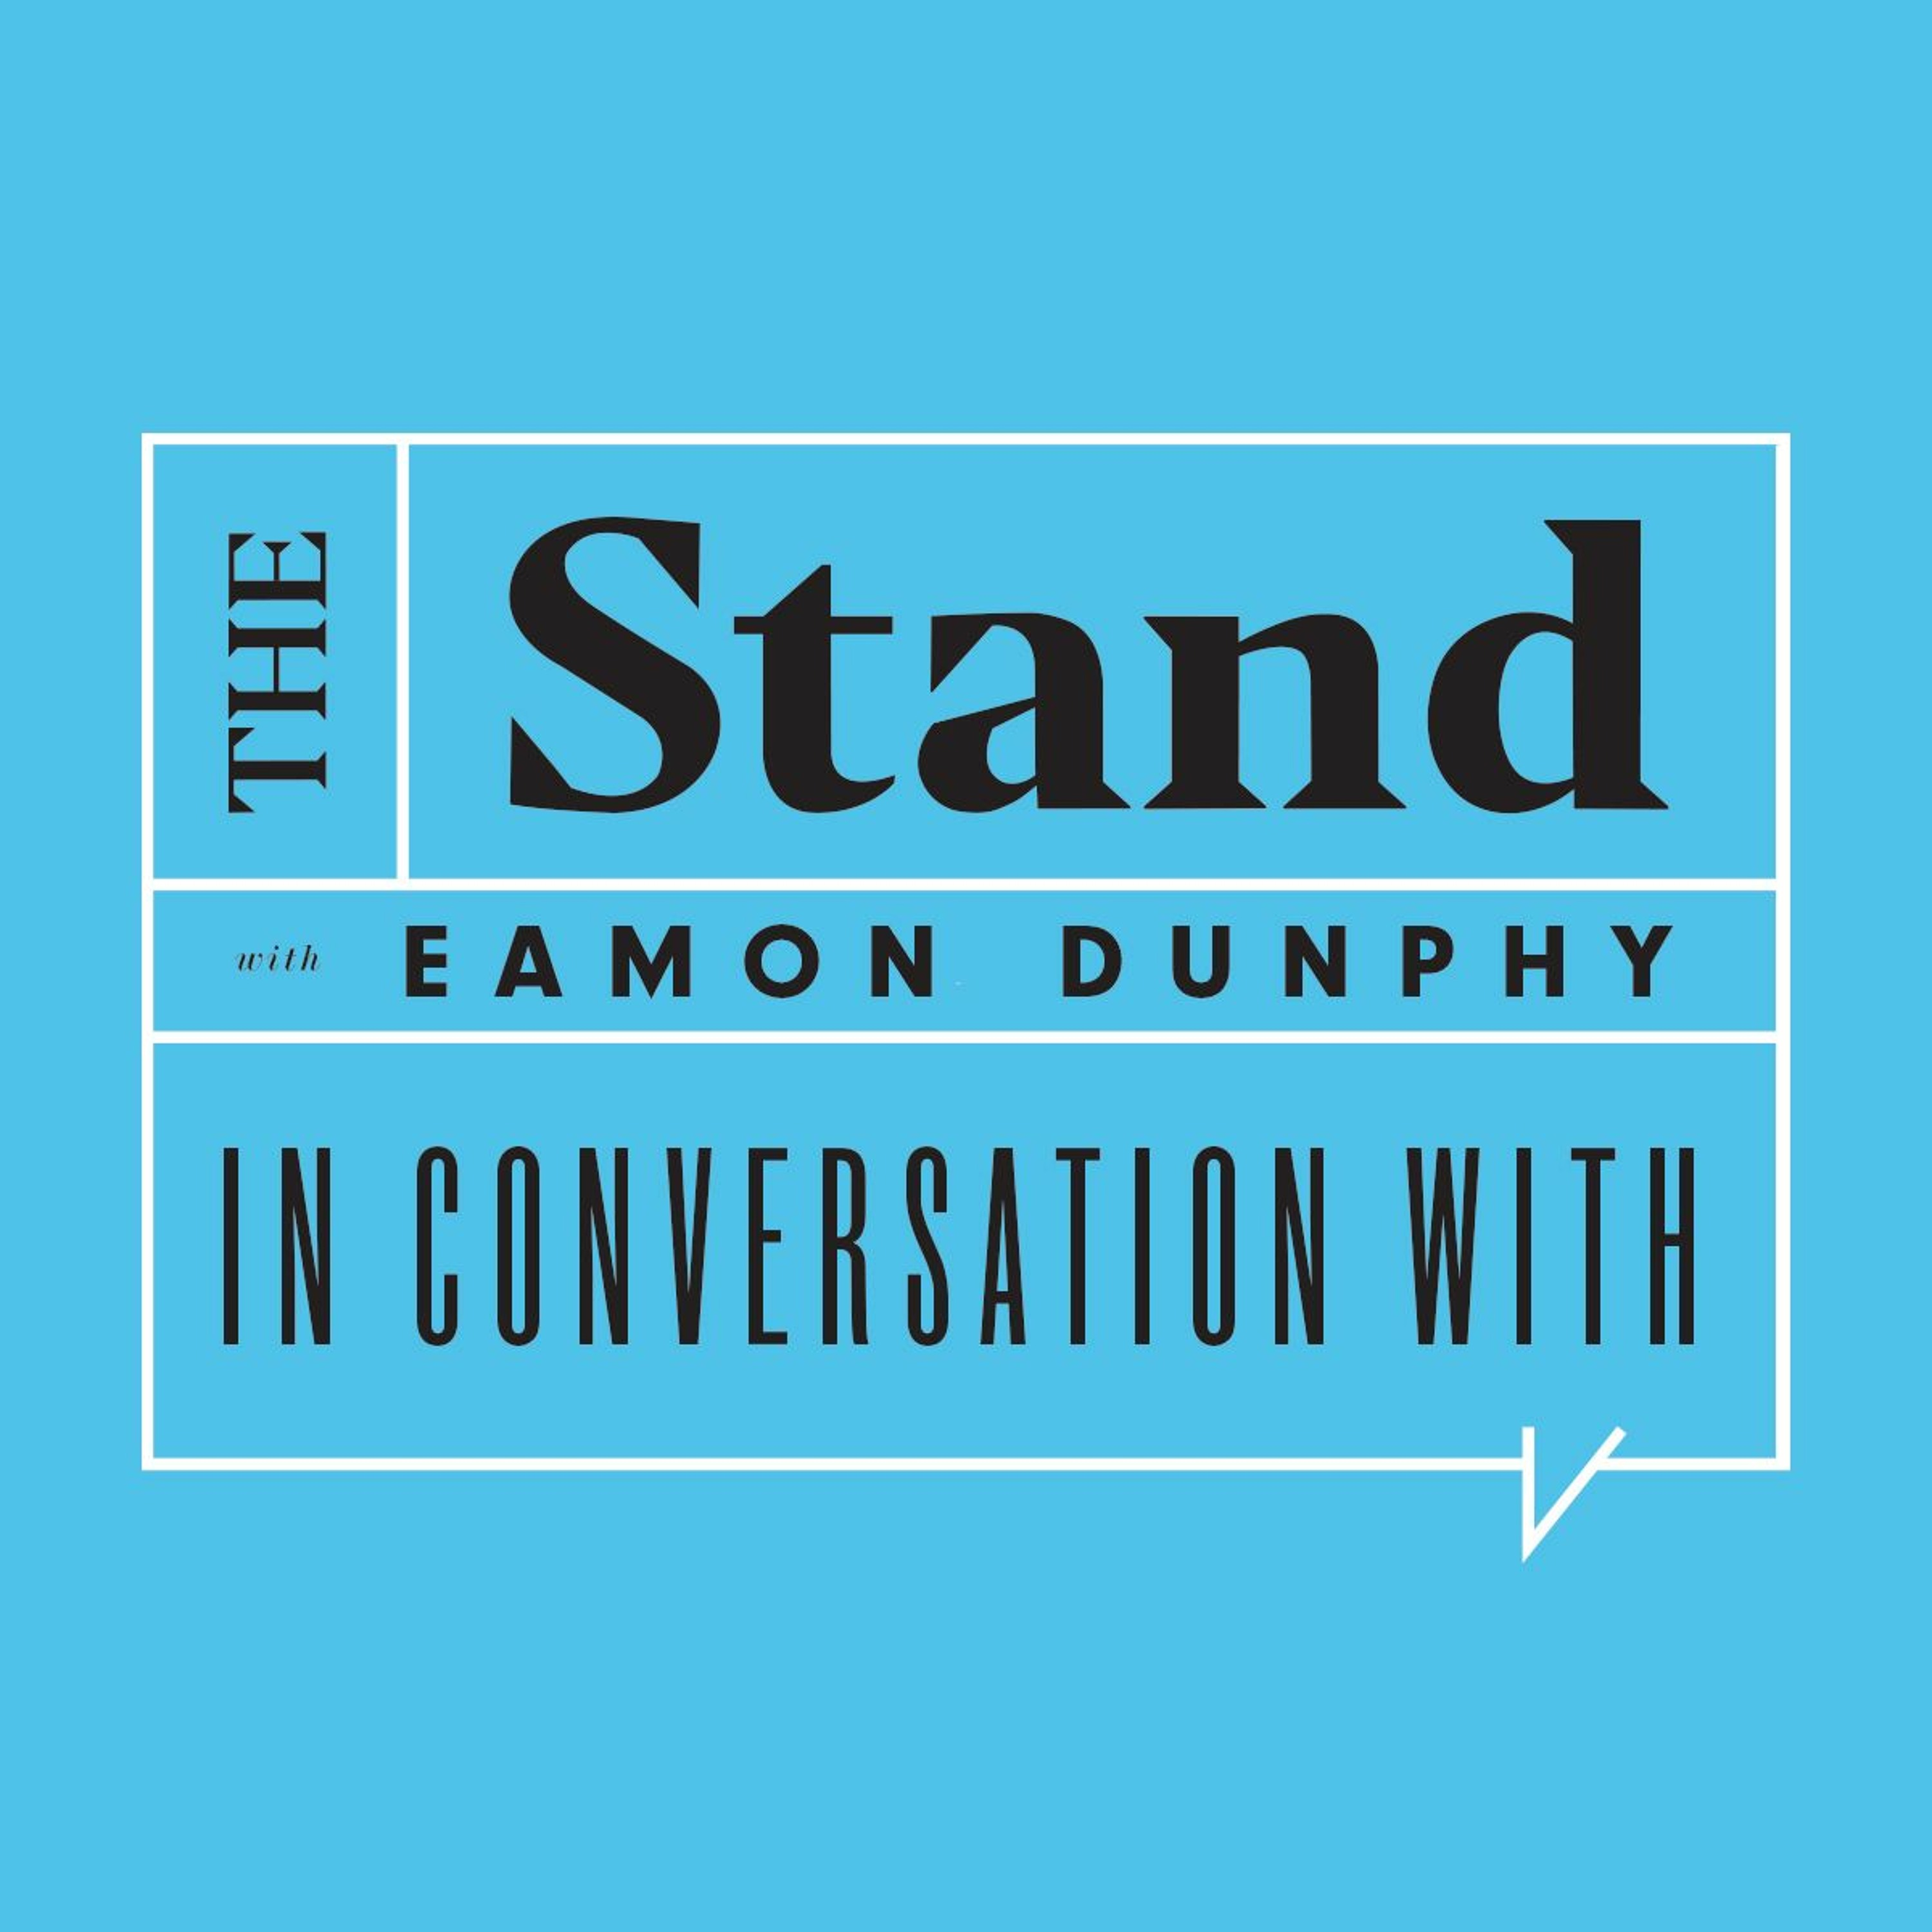 Ep 817: On The Passing Of John Hume Eamonn McCann Talks About The Man He Knew